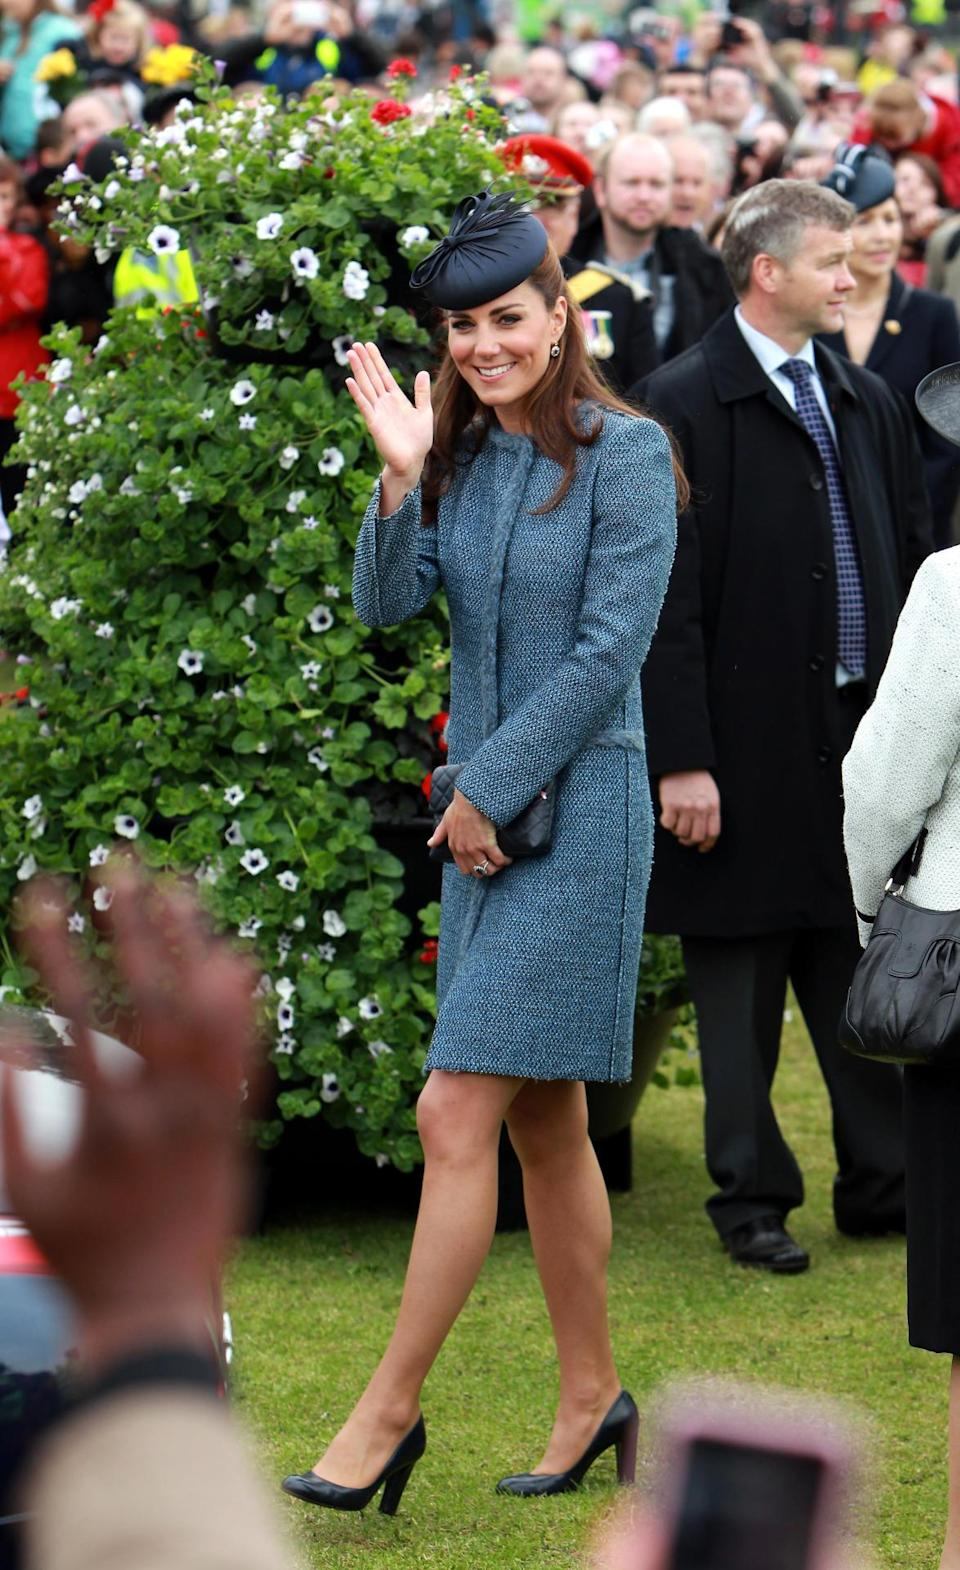 <p>During a trip to Nottingham, the Duchess wore a blue tweed Missoni coat with a chic black hat. She carried a quilted leather bag by Jaeger and finished with L.K. Bennett pumps.</p><p><i>[Photo: PA]</i></p>